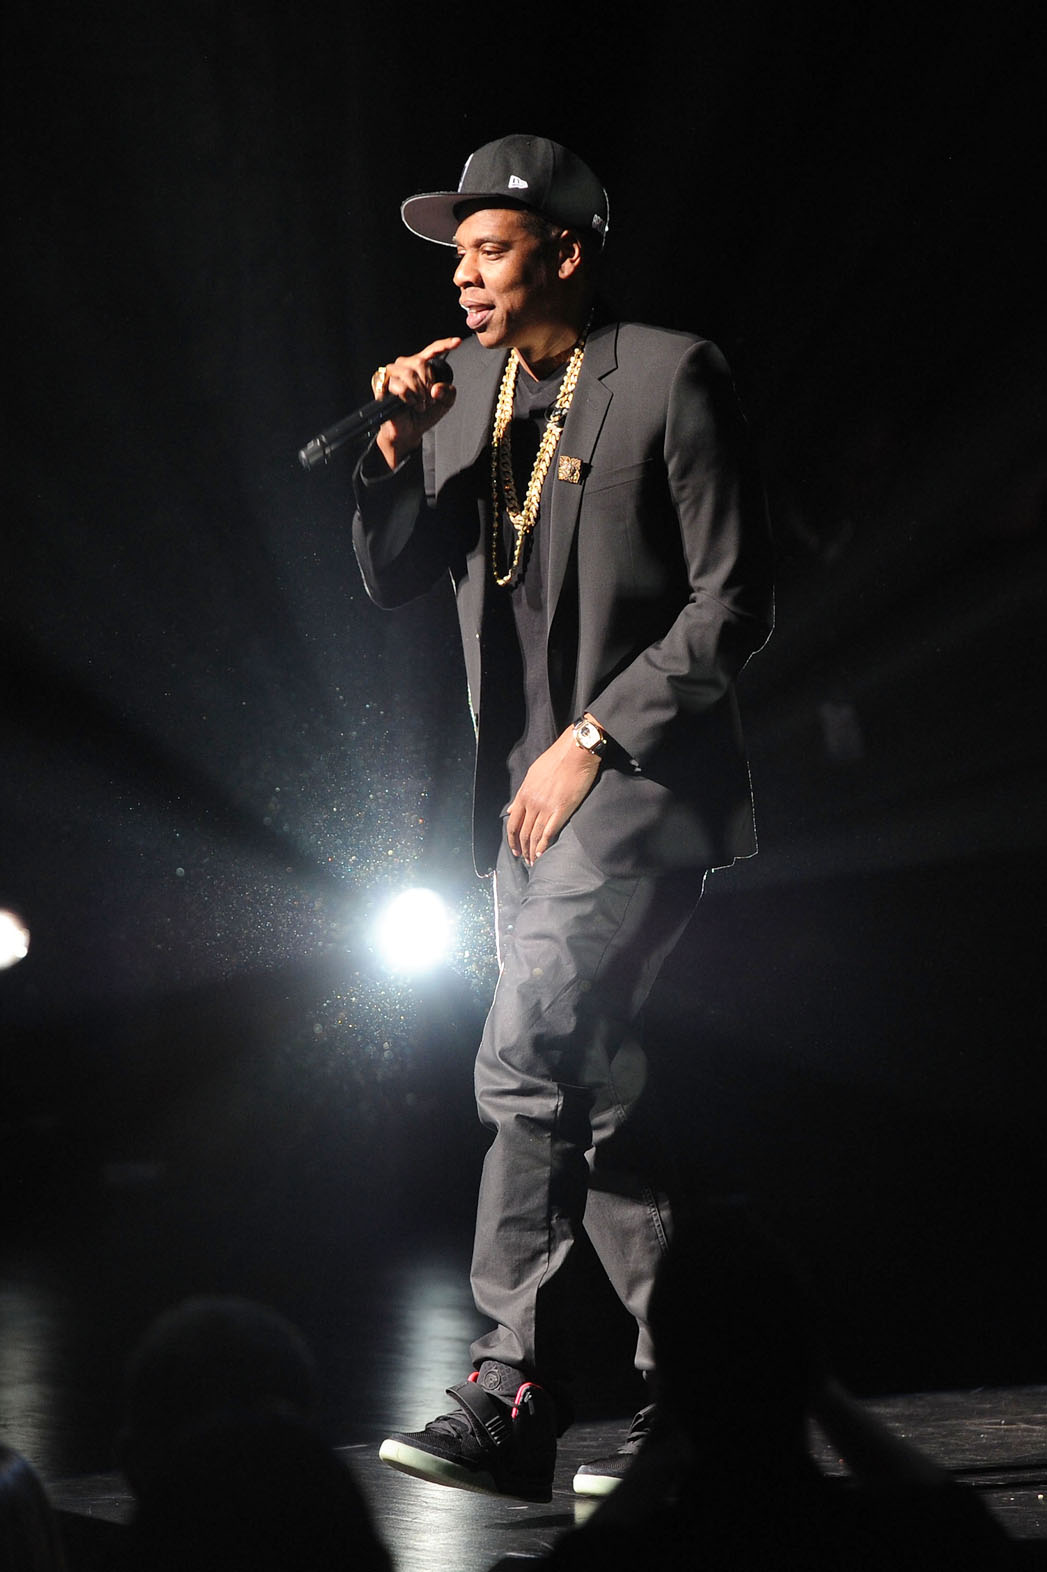 Jay-Z Performing - P 2013